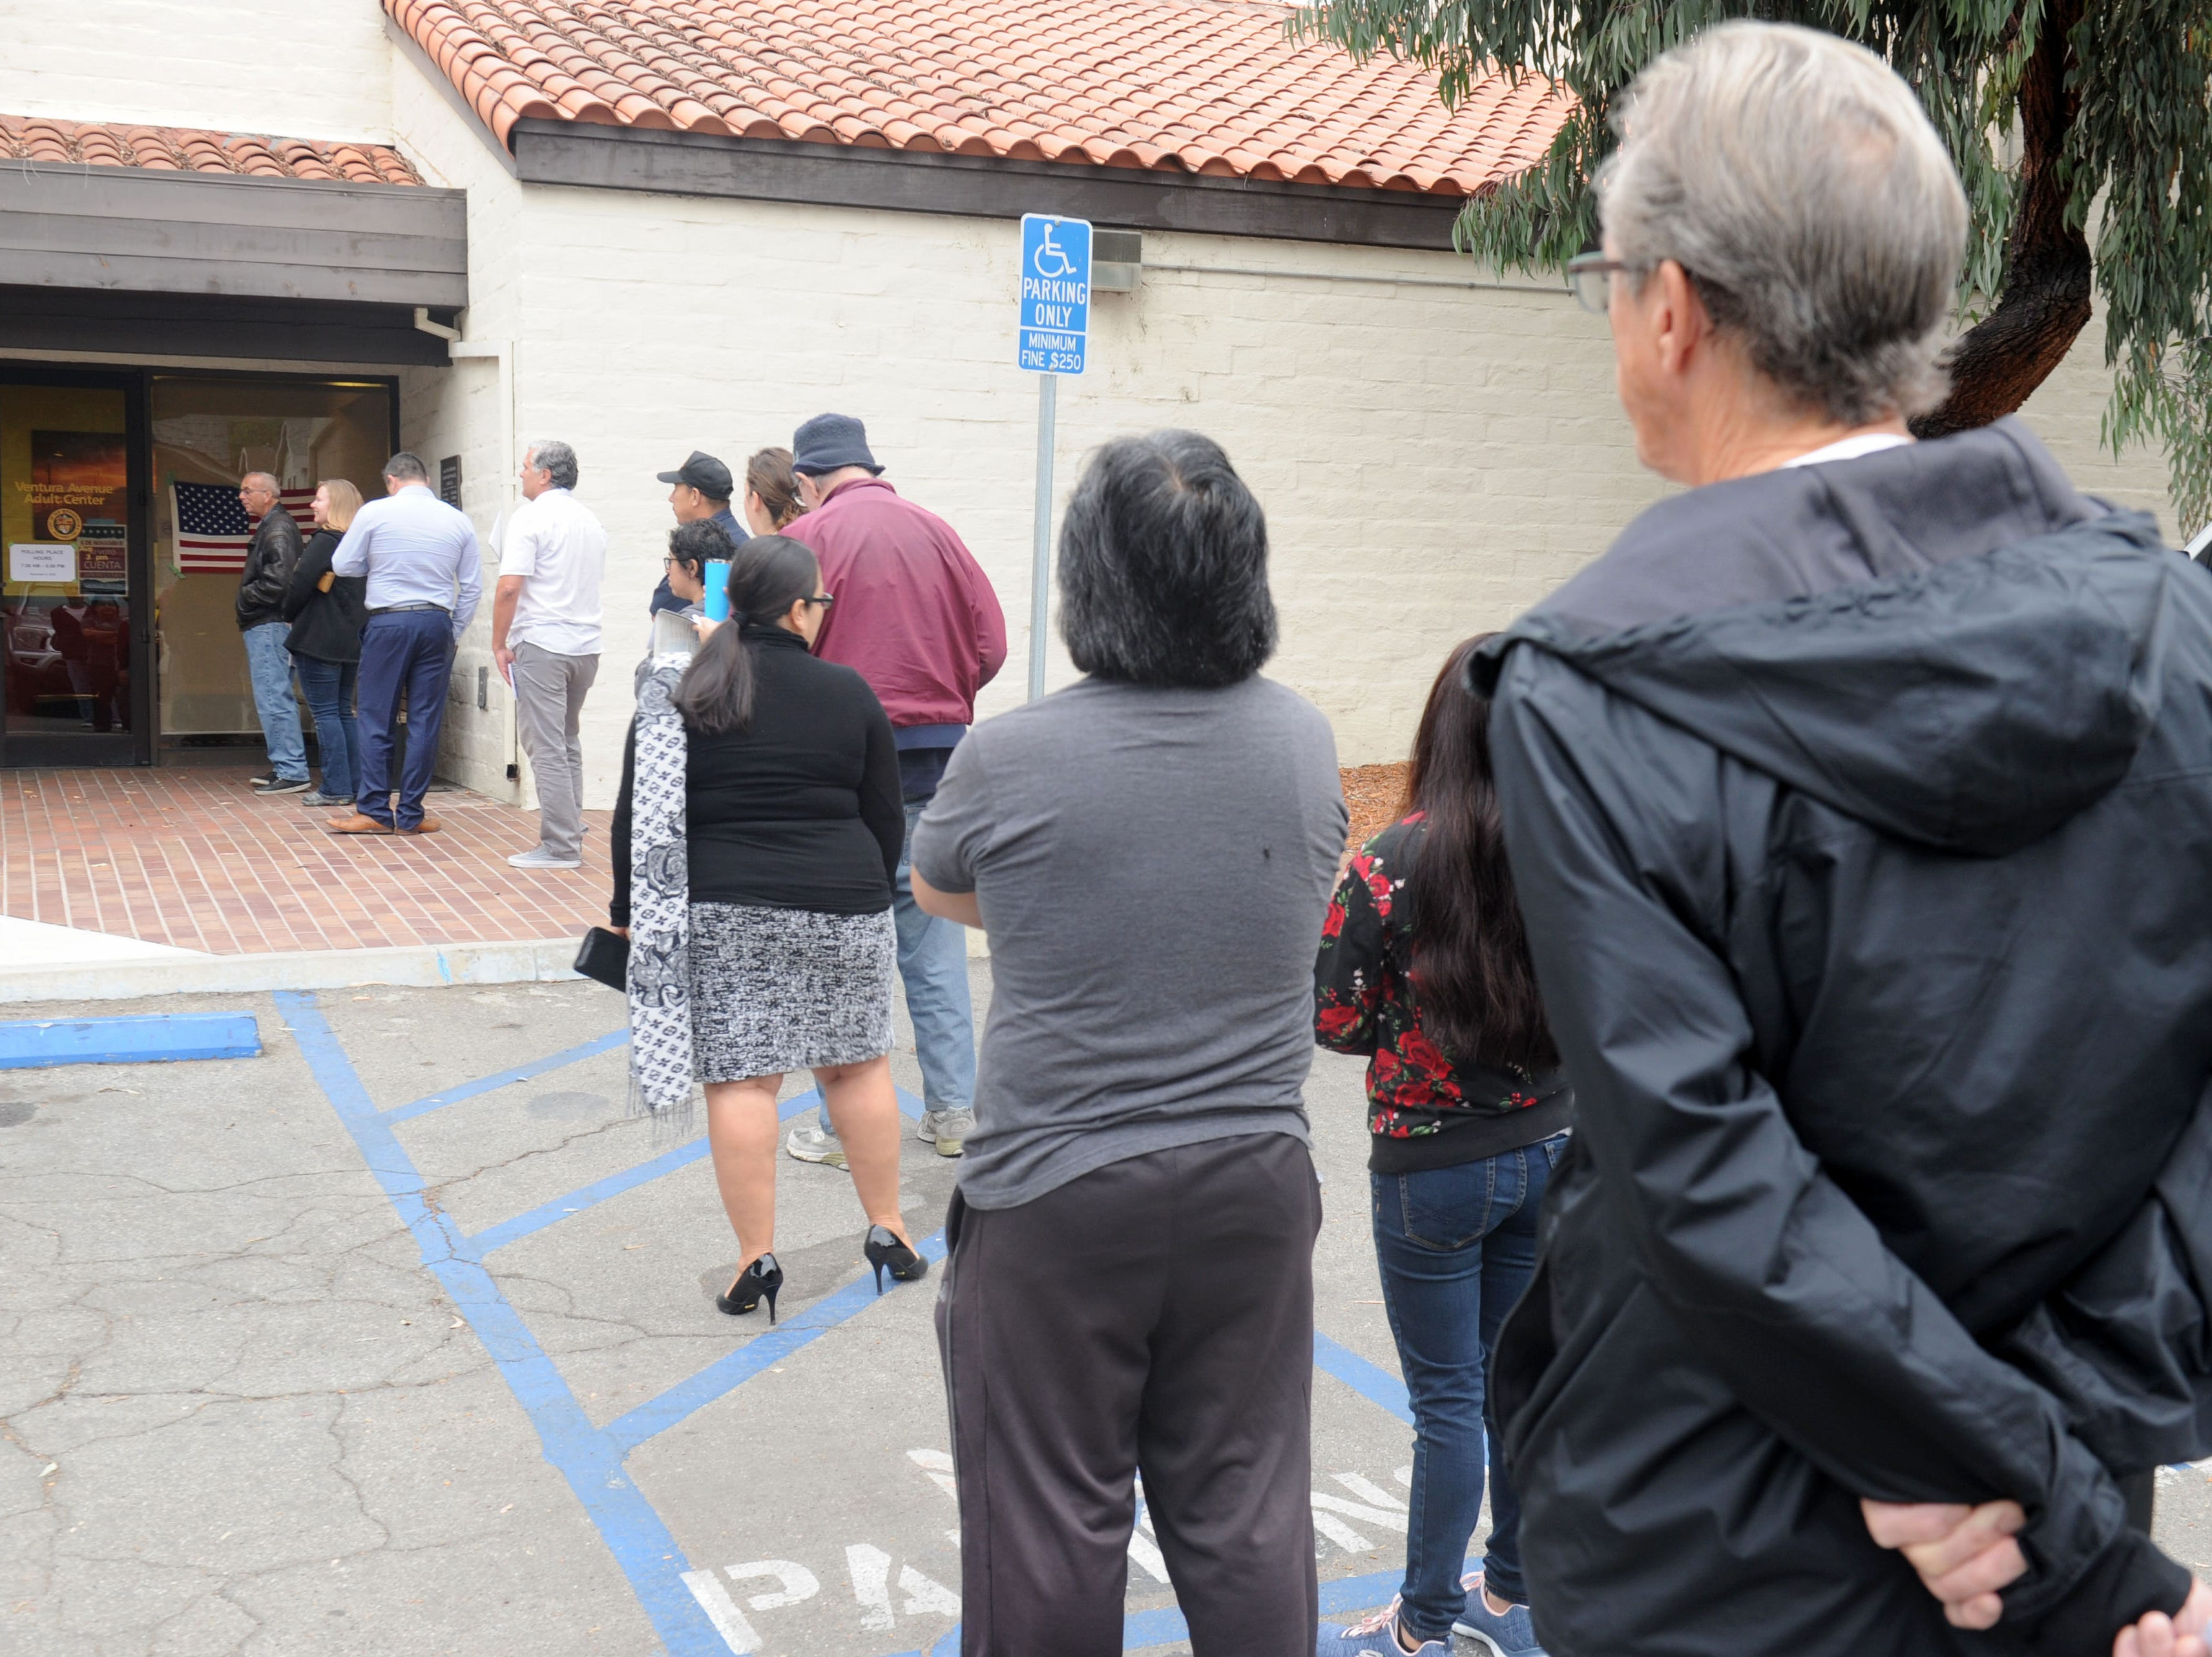 People waiting in line to vote at the Ventura Avenue Adult Center on Tuesday morning.